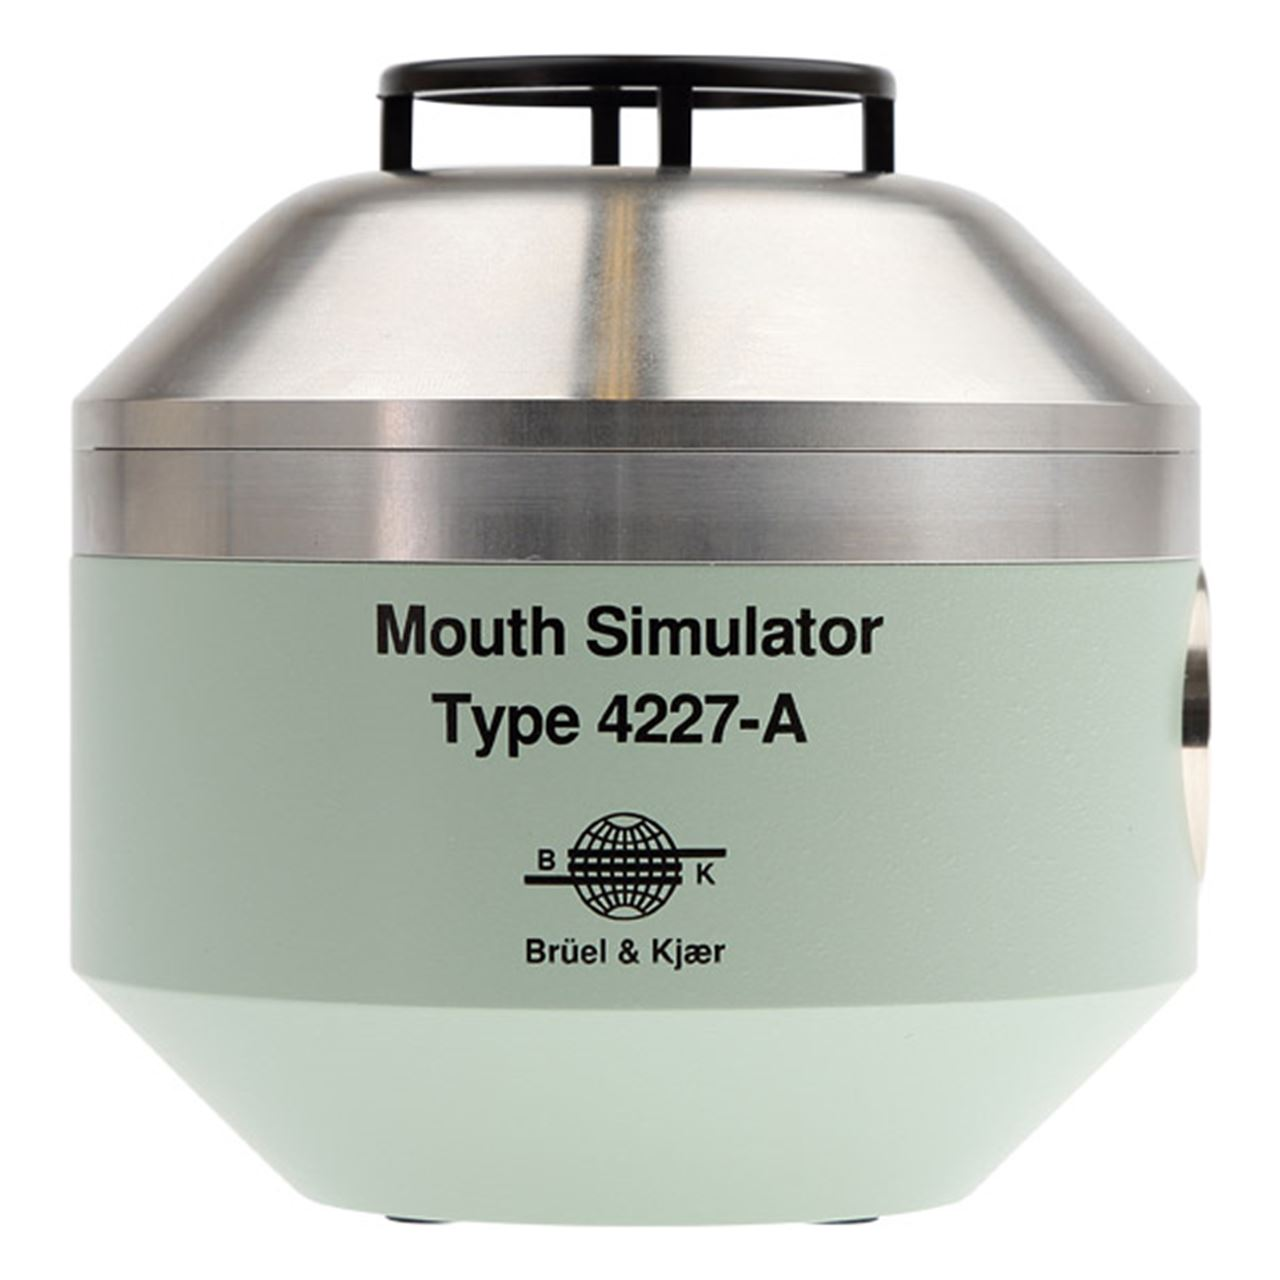 Type 4227 and 4227-A – Mouth Simulator